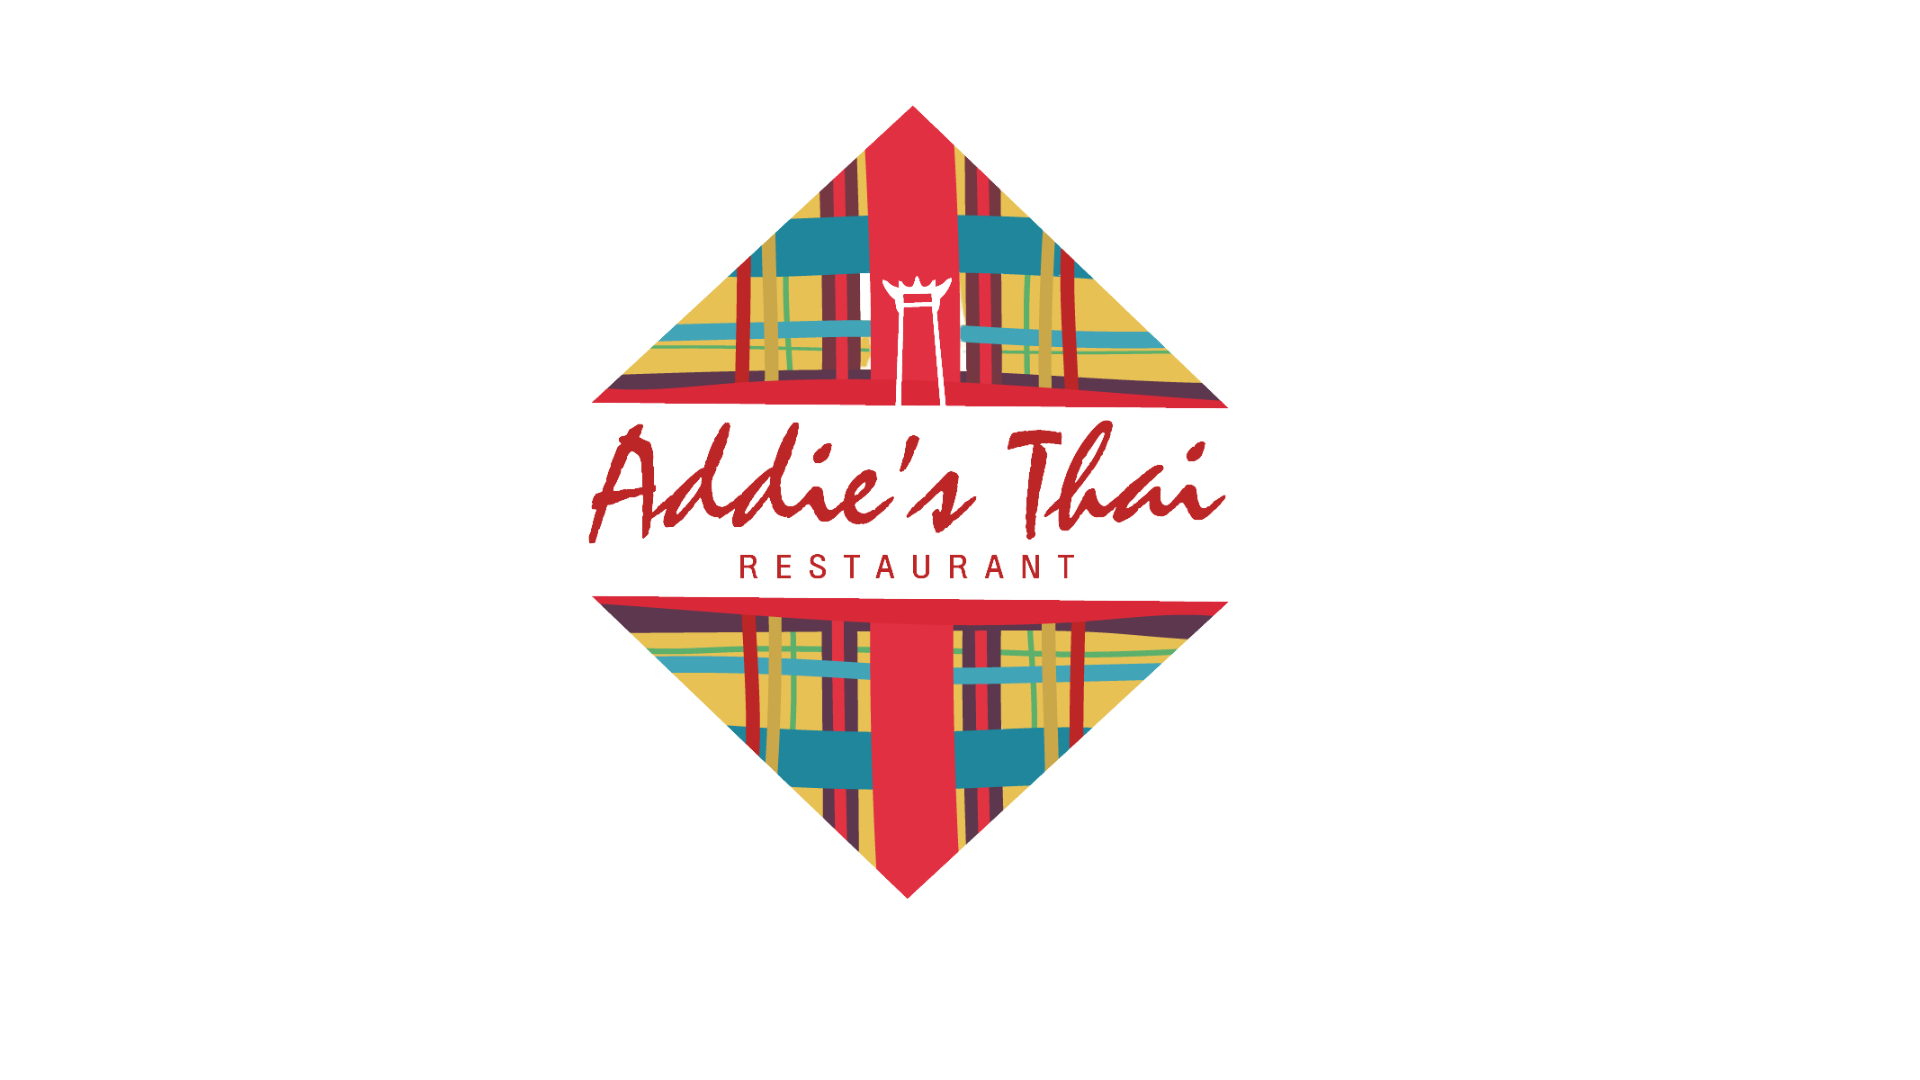 Addies Thai Restaurant